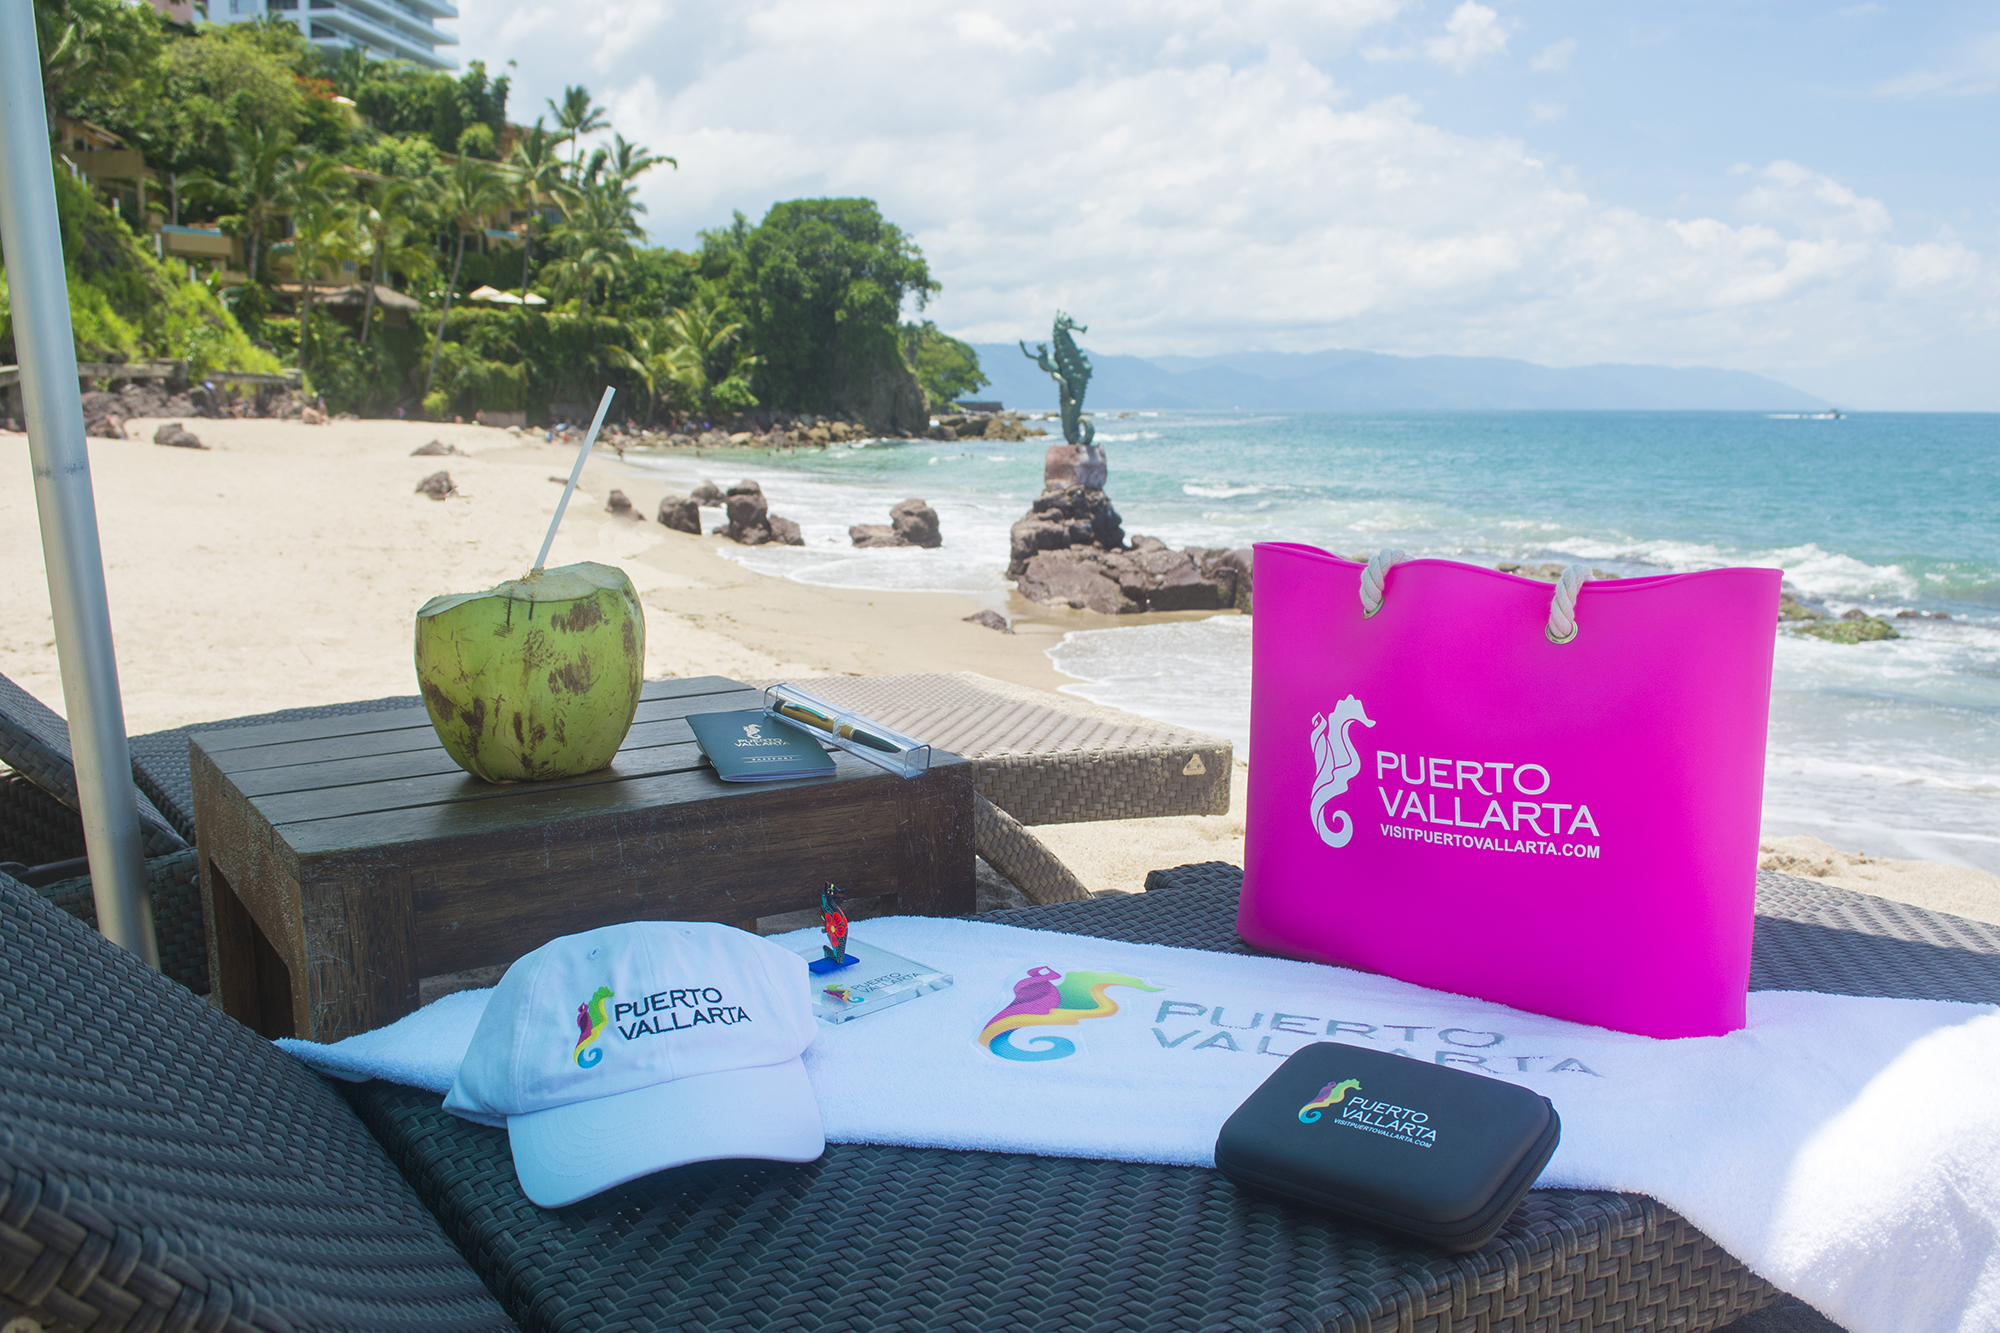 Win a trip to Puerto Vallarta! Join us for the Twitter Chat